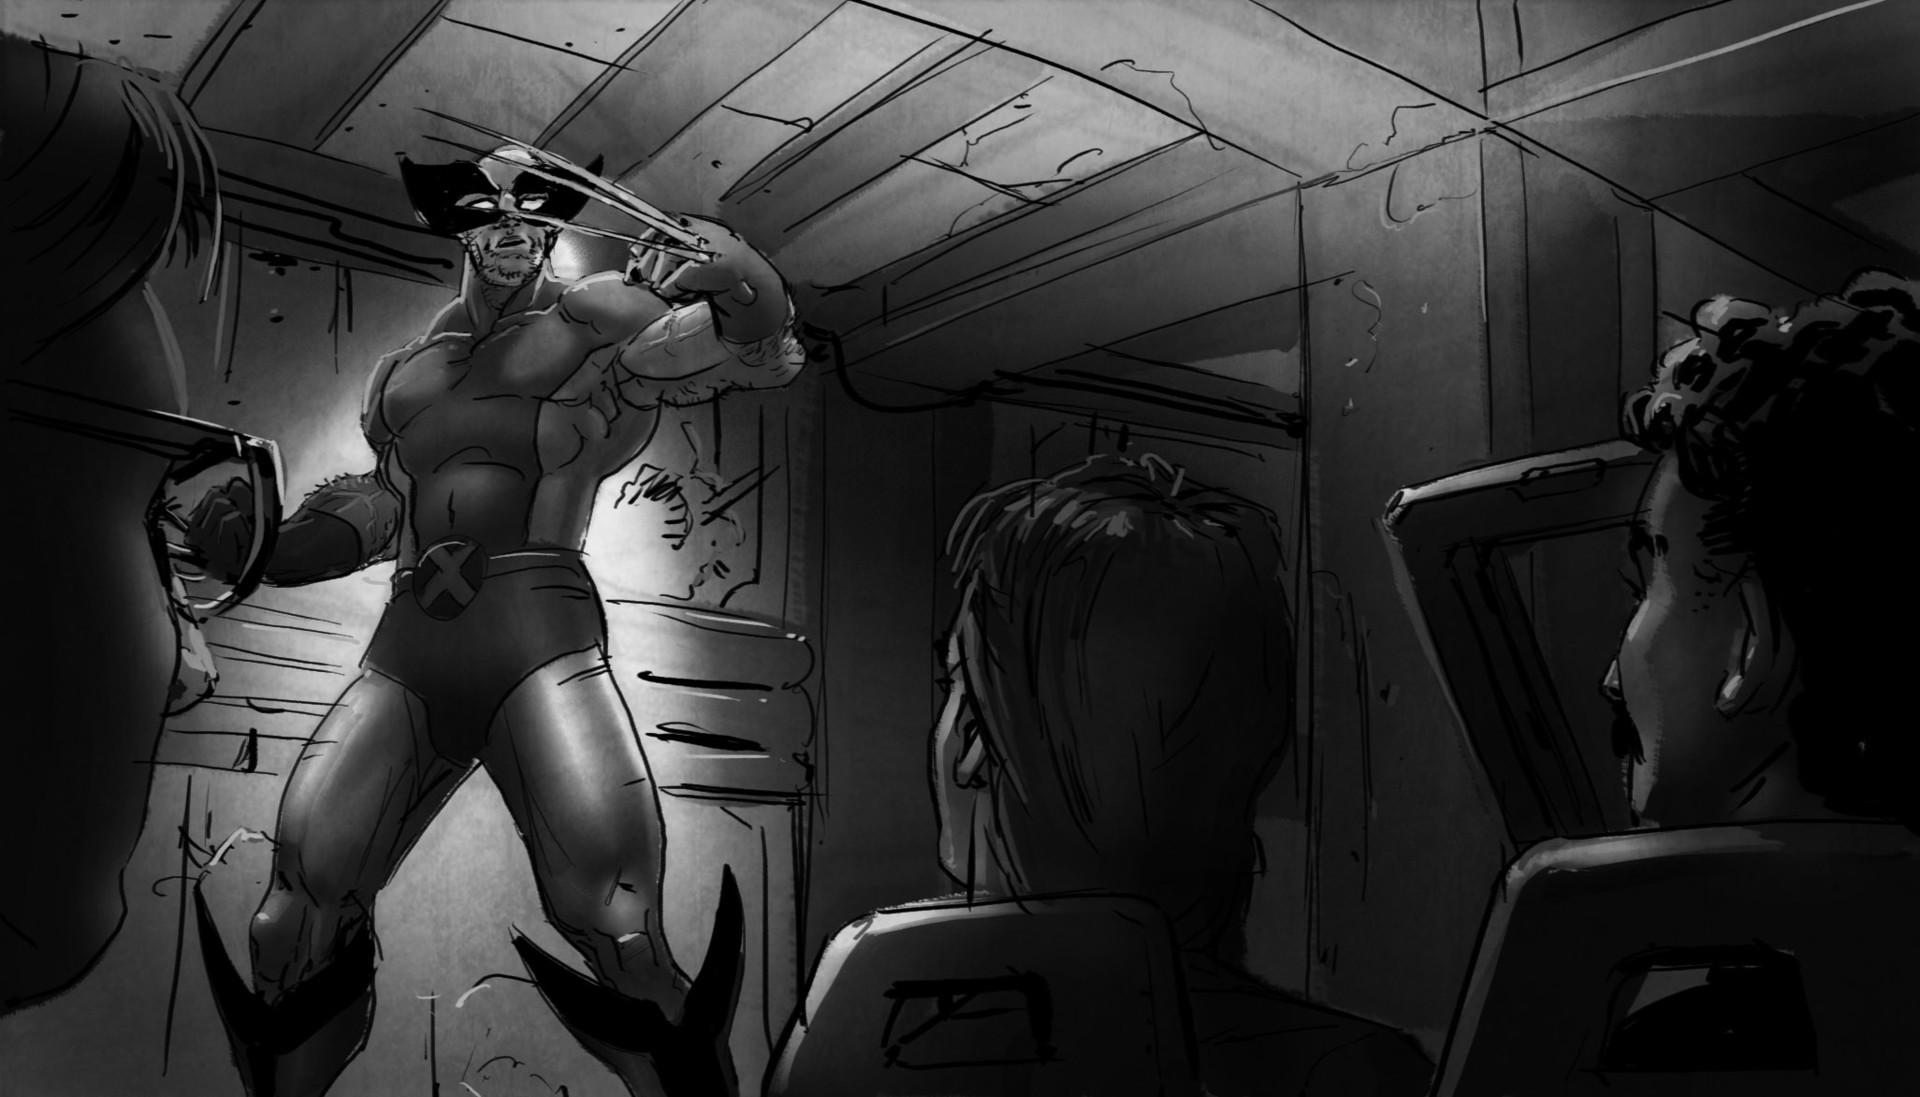 -- Wolverine, fresh from knocking 'ol bullet-head out of our path. But as we steer our way out--